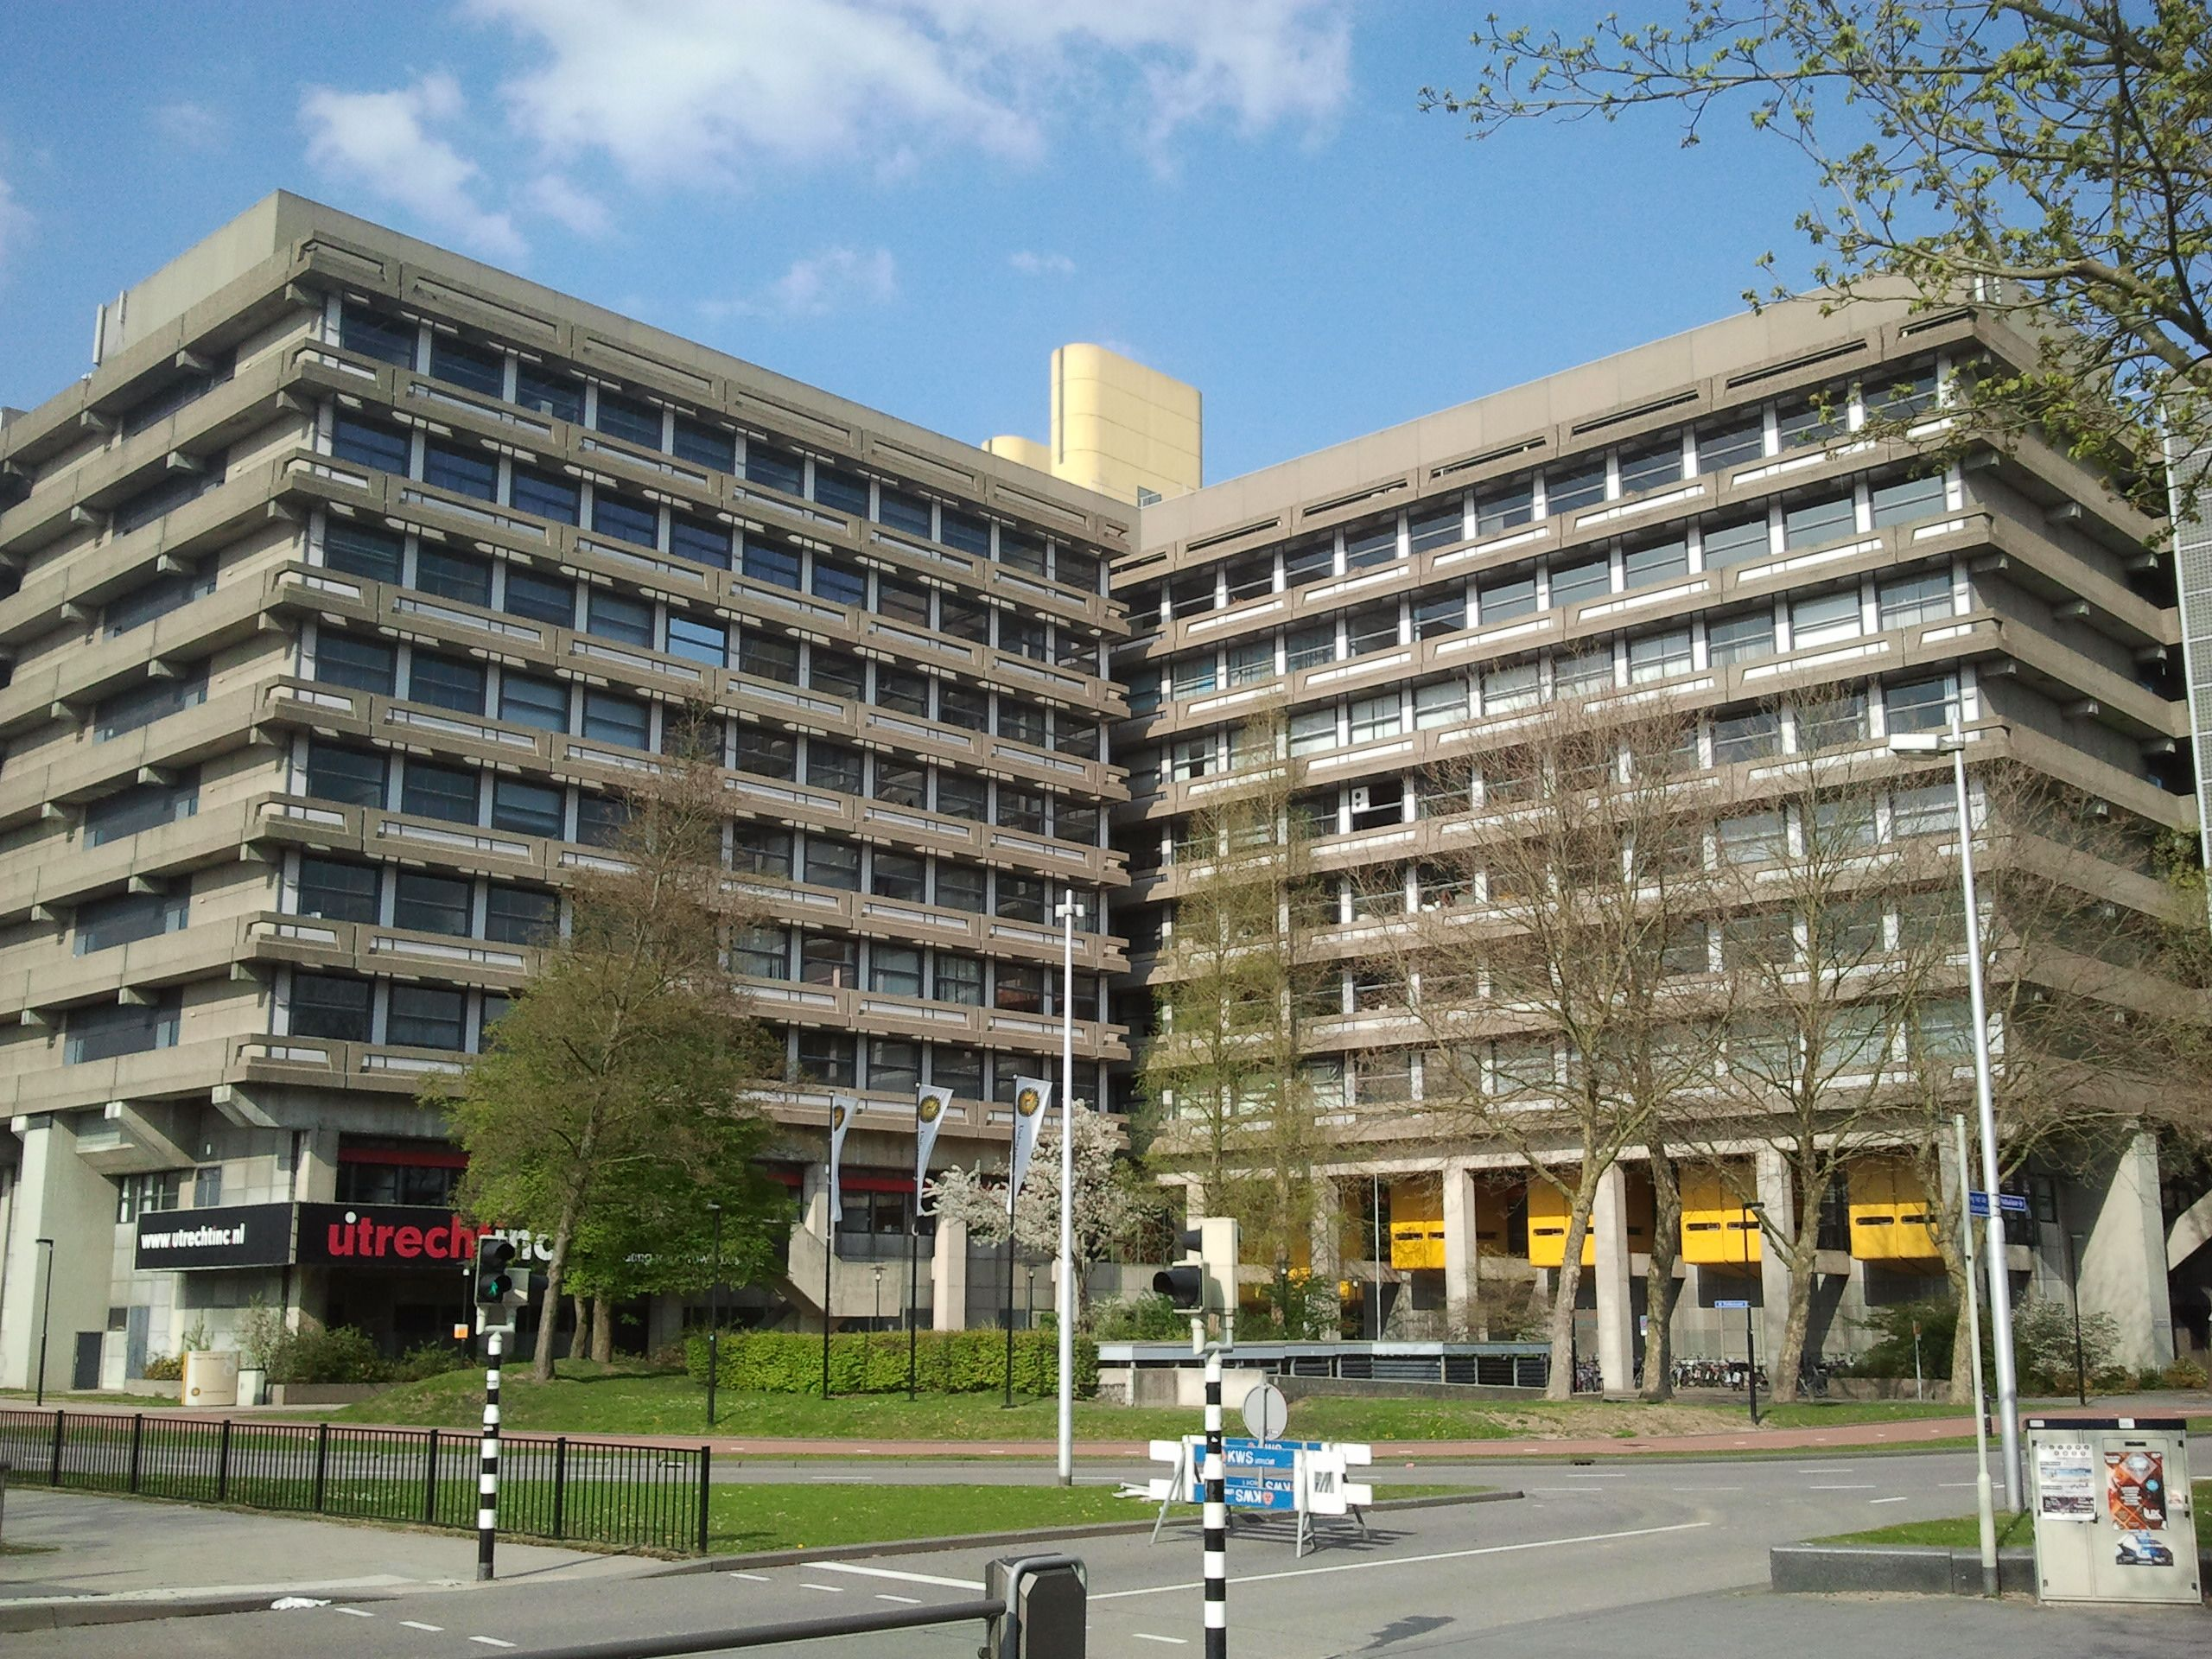 Kruytbuilding,_Utrecht_University,_Utrecht,_The_Netherlands.jpg